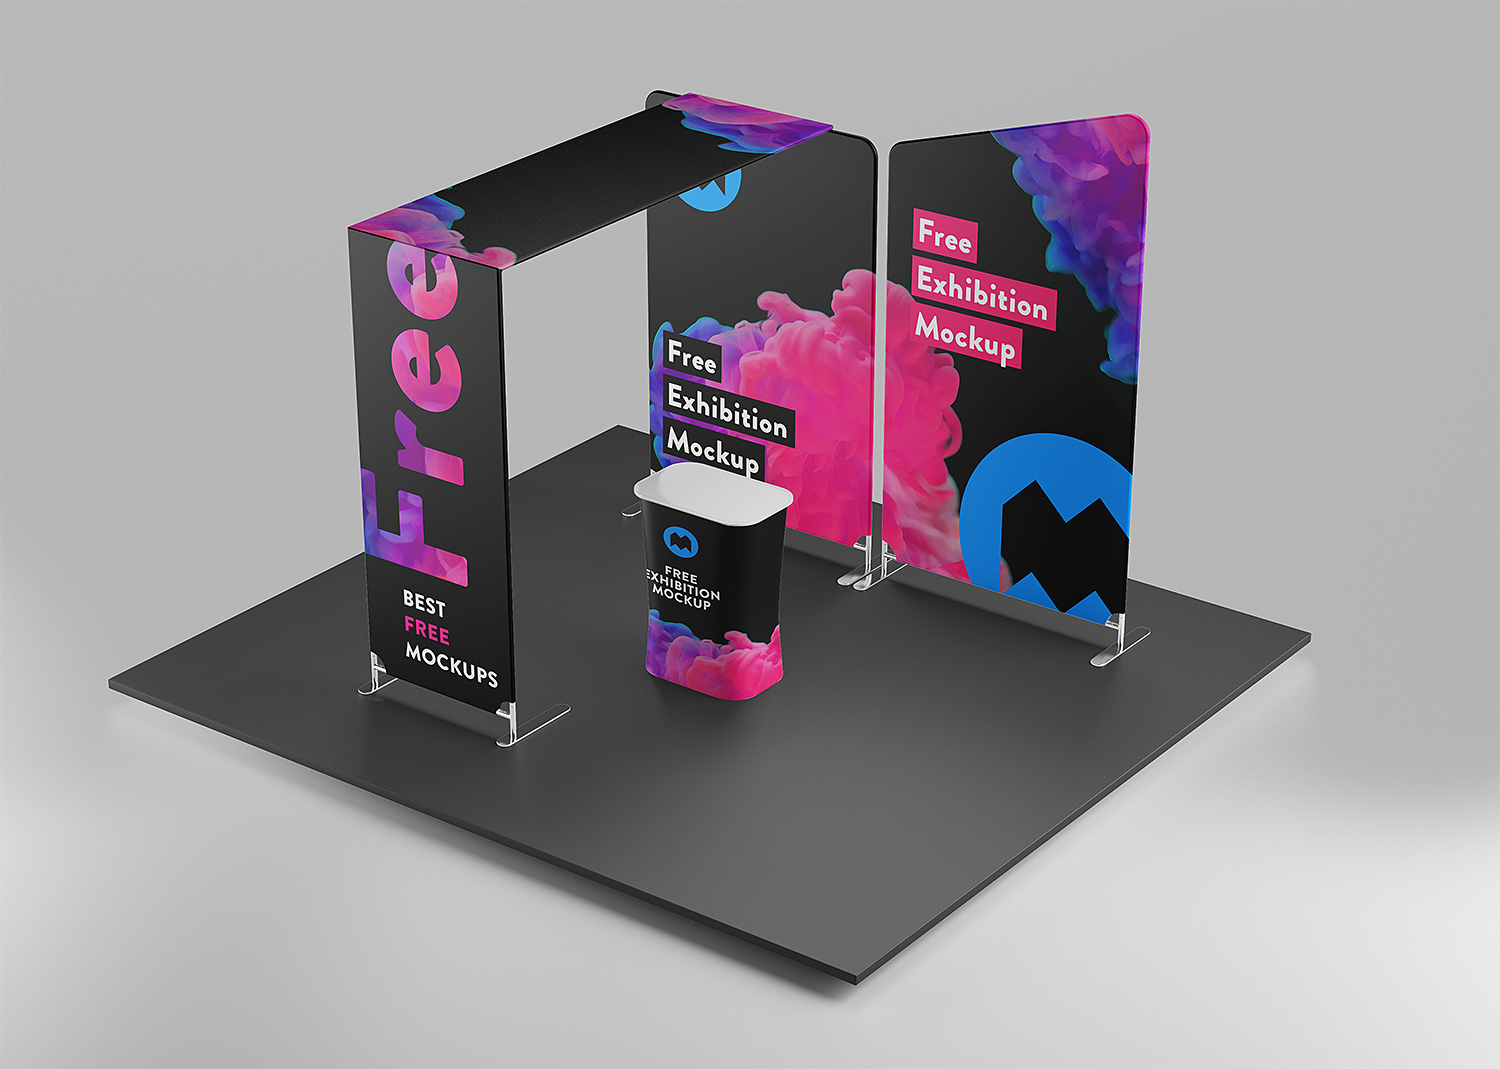 Exhibition Booth Mockup Free Download : Free exhibition mockup free mockup